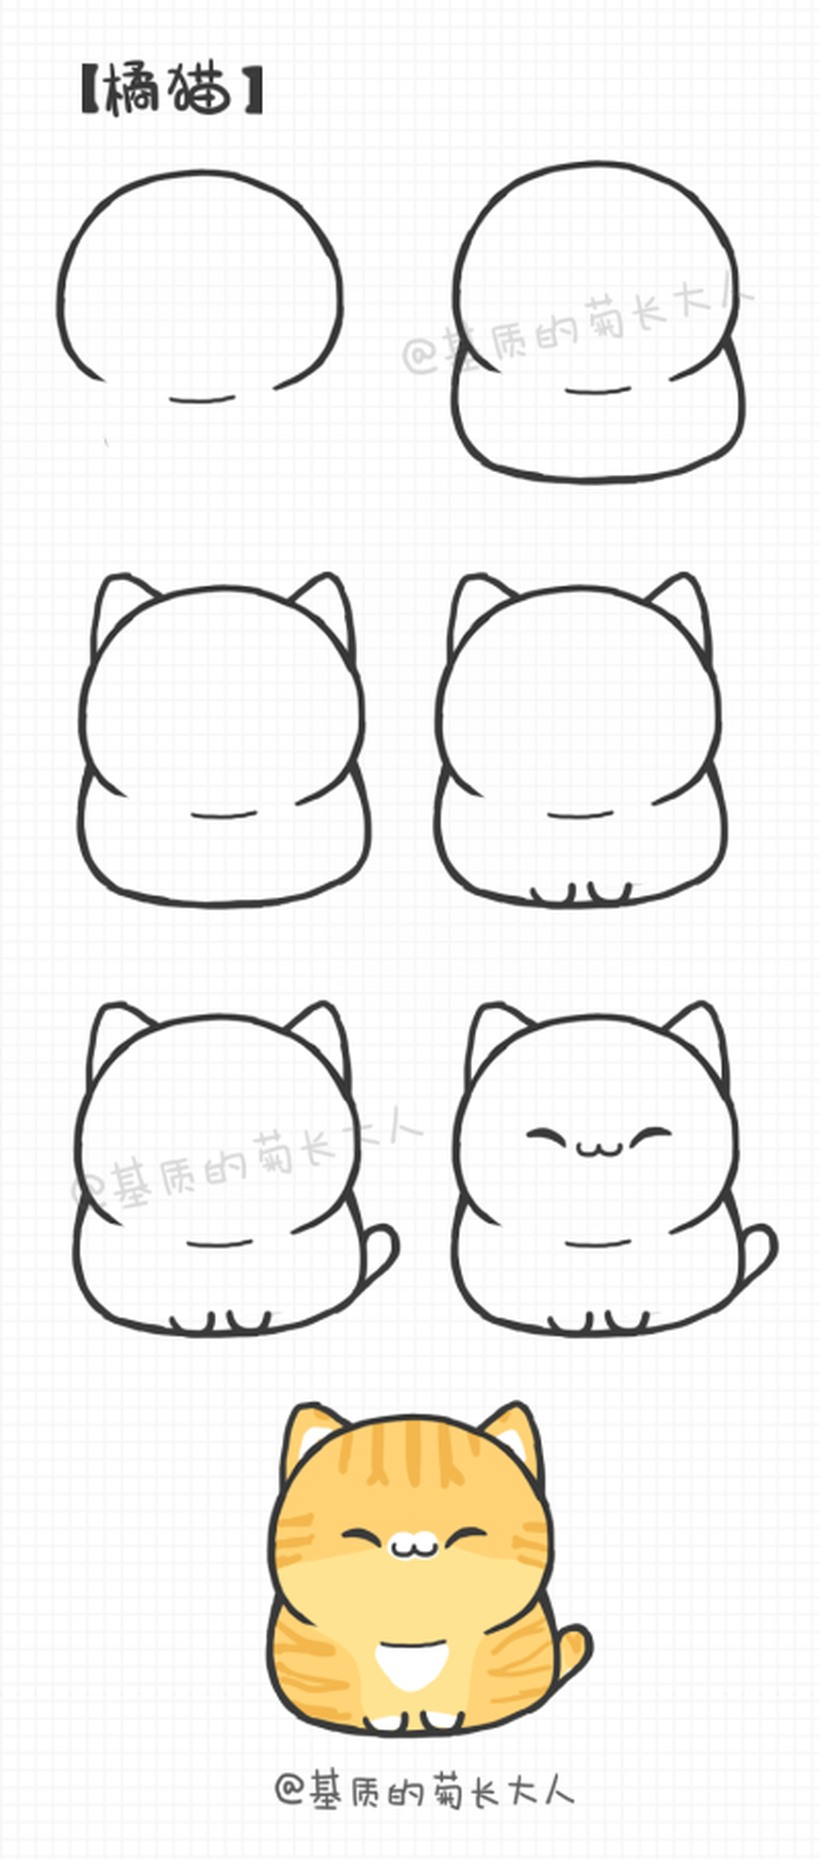 gatos gato kawaii dibujos faciles super tiernos paso a paso coloreados